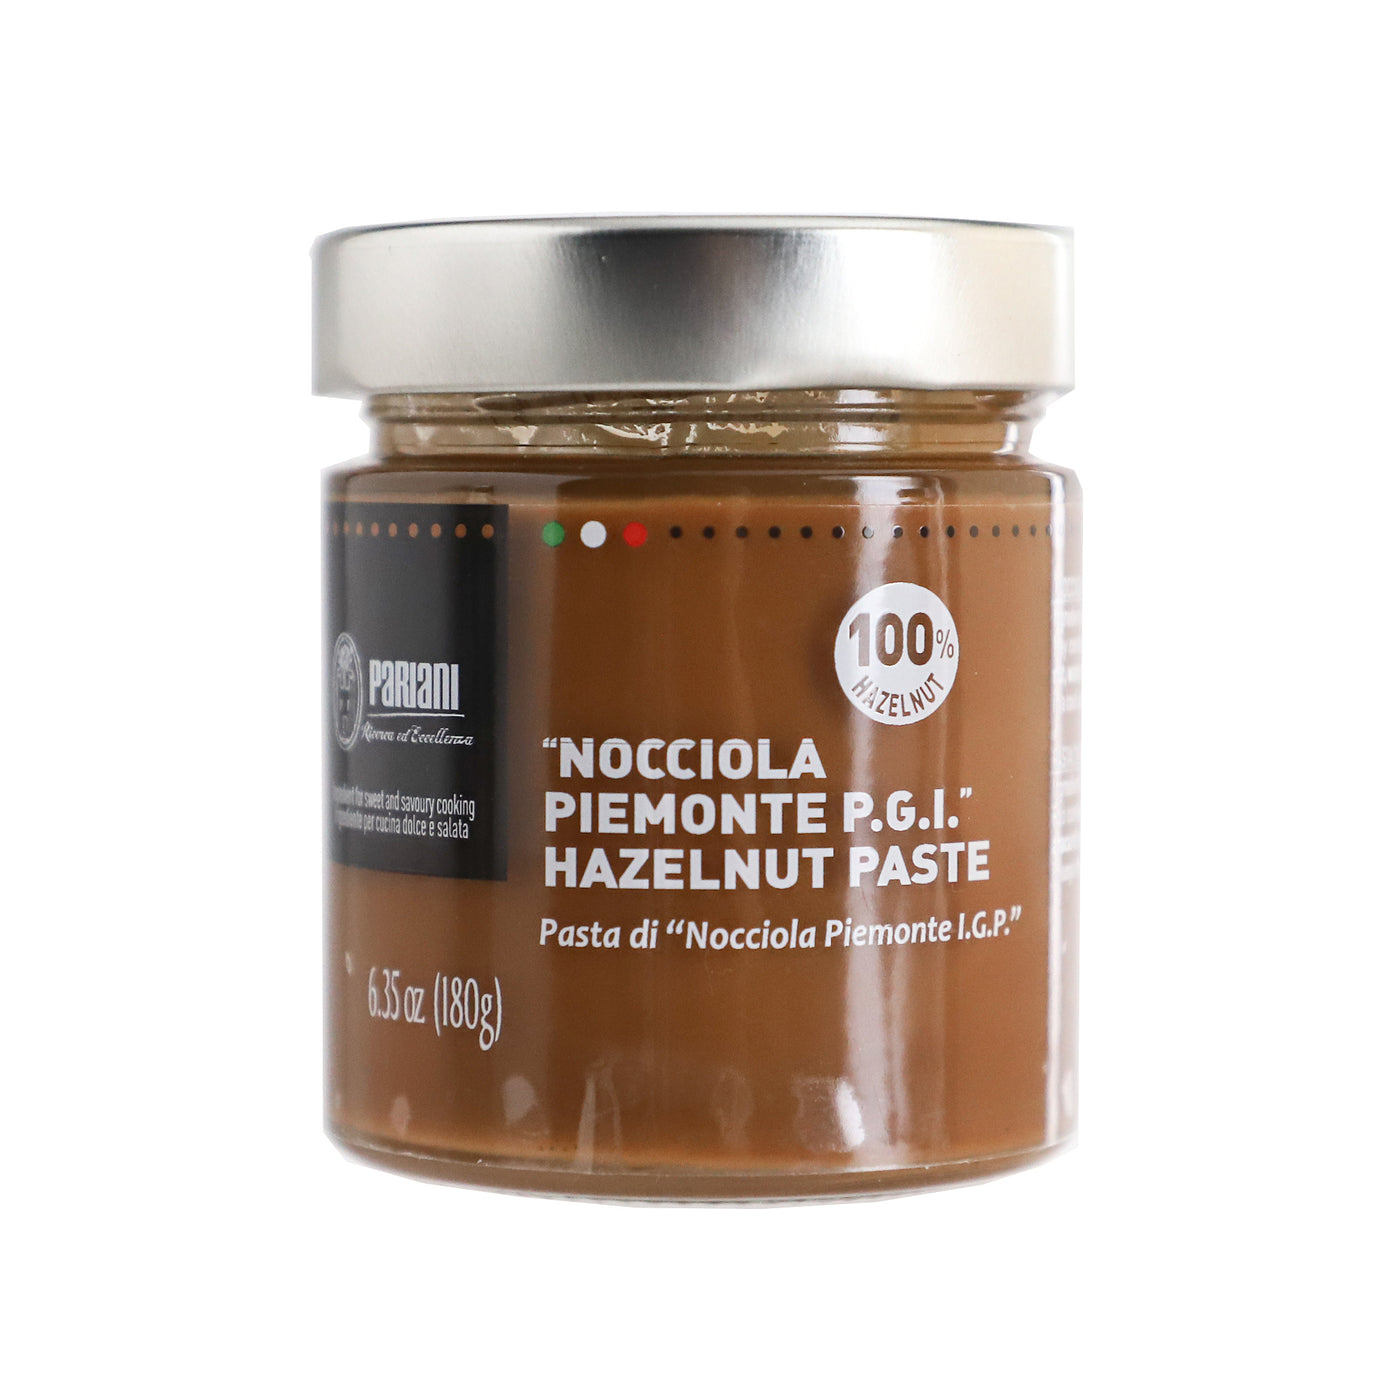 PARIANI 100% Pure Unsweetened Hazelnut Paste from Italy - 180g